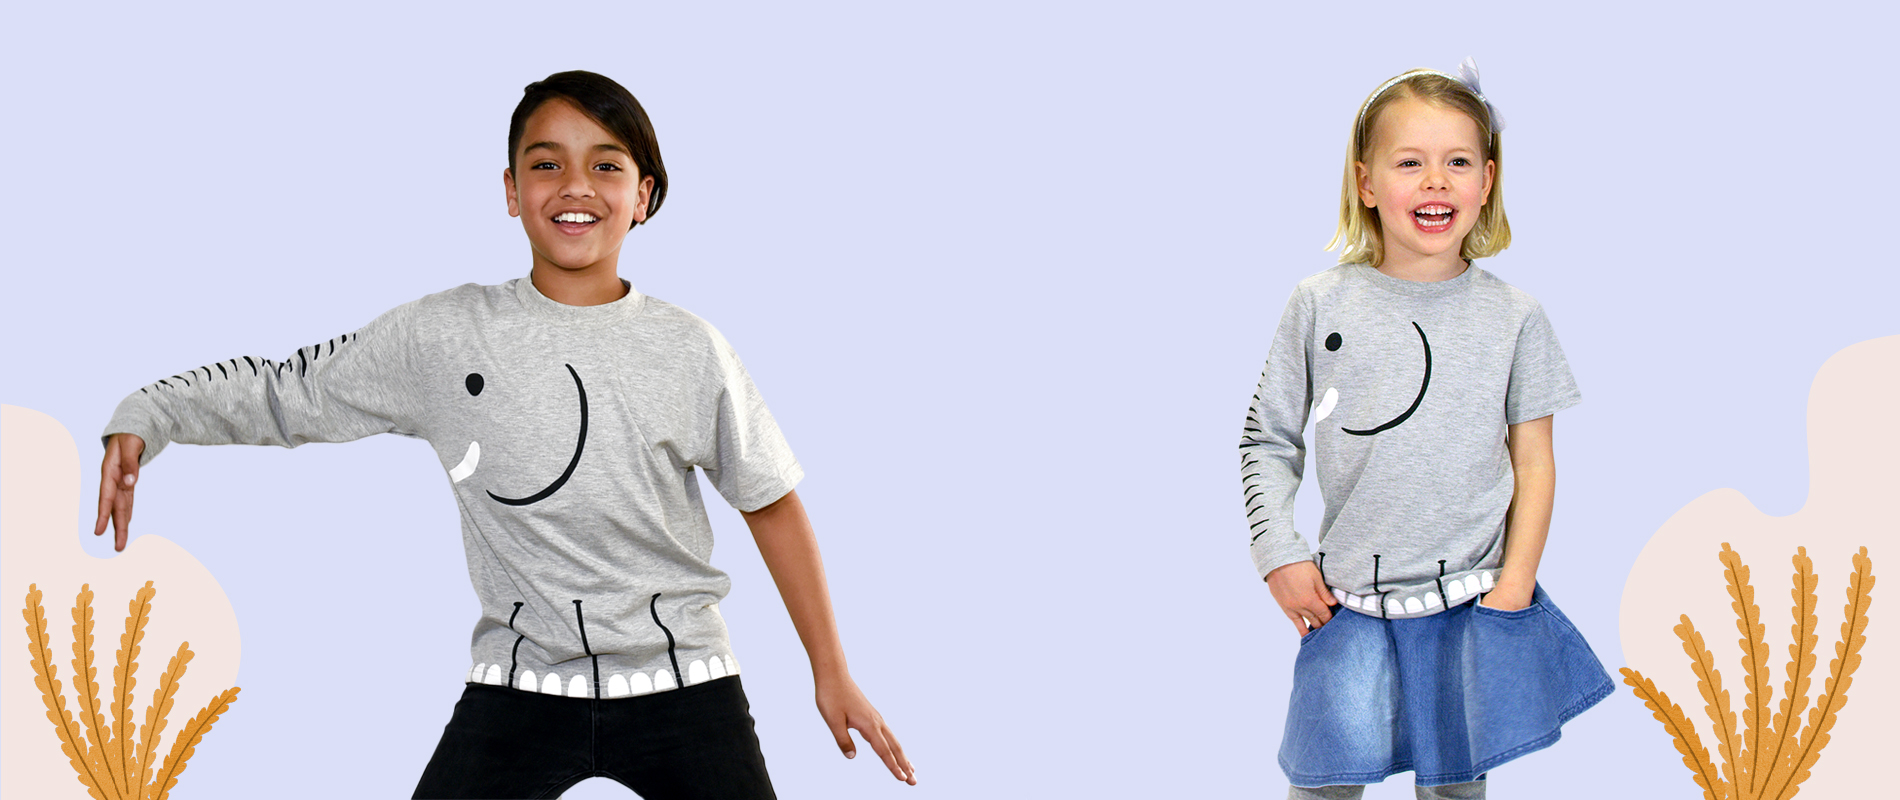 Sheldrick Wildlife Trust launches t-shirt educating kids about why elephants are facing extinction in new project via whiteGREY